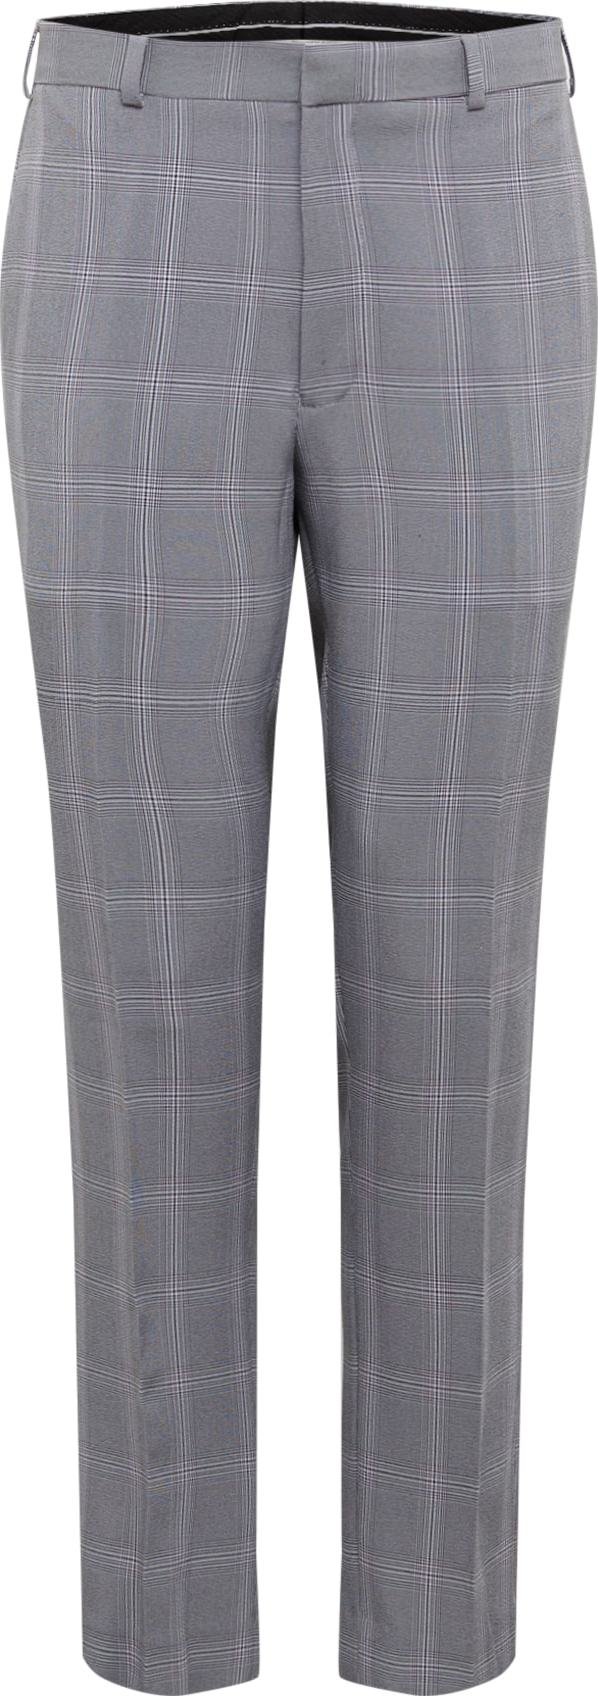 BURTON MENSWEAR LONDON Chino kalhoty LIGHT GREY GRAPHIC CHECK šedá Burton Menswear London